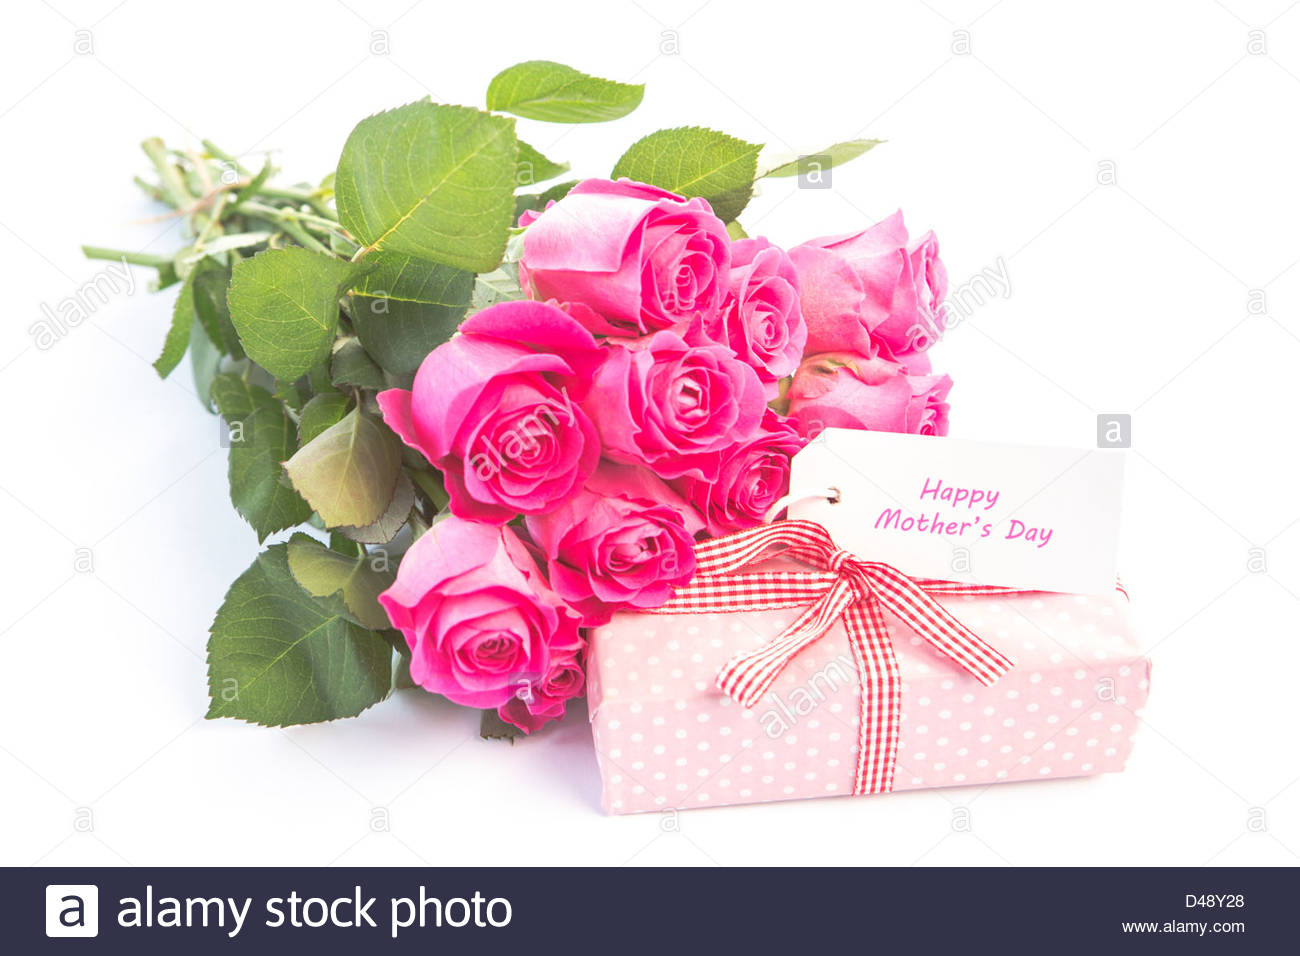 happy birthday pink roses ; bouquet-of-pink-roses-next-to-a-gift-with-a-happy-birthday-card-D48Y28